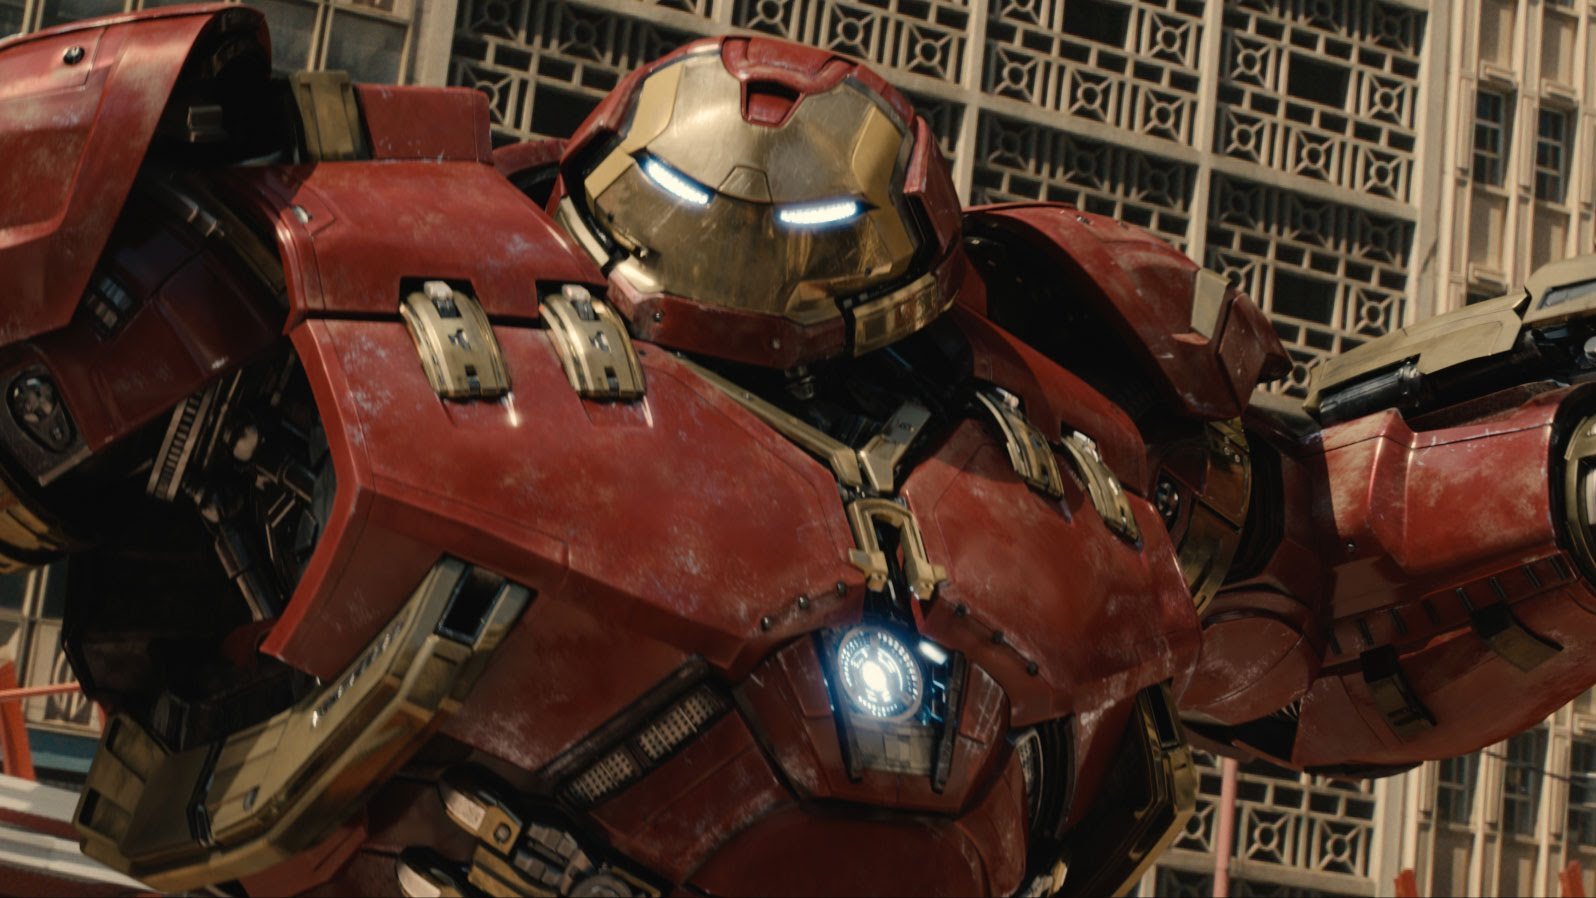 Review: Some Thoughts on Avengers: Age of Ultron